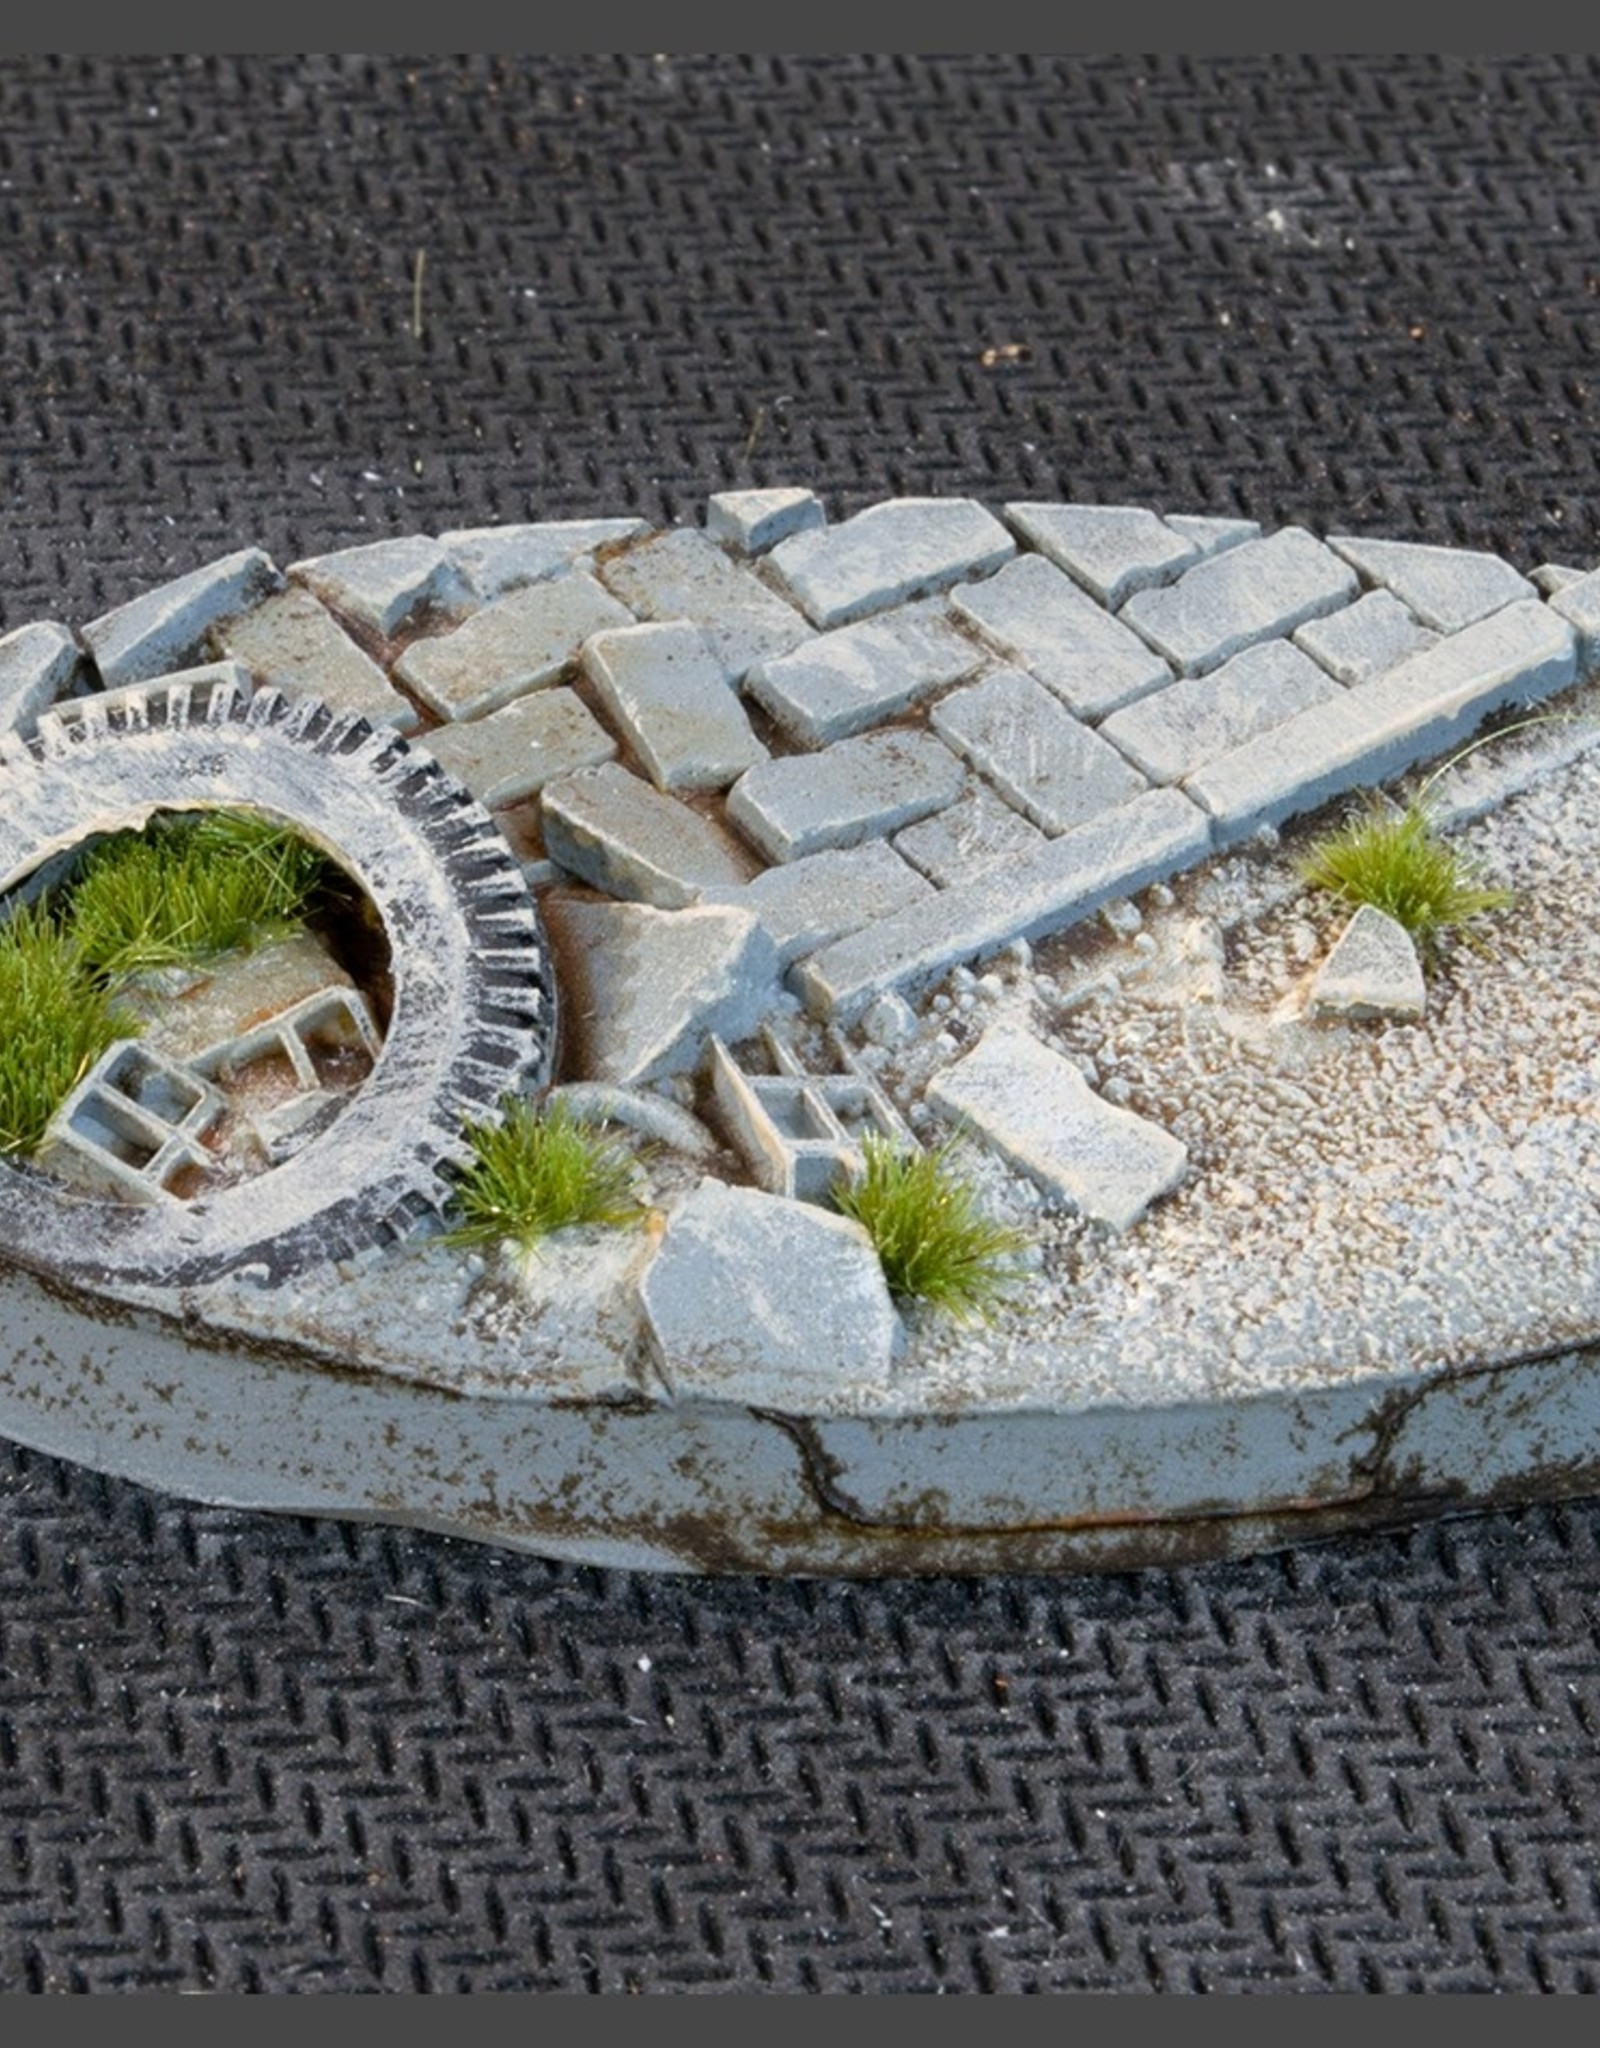 Gamers Grass Urban Warfare Bases Pre-Painted (4x 60mm Oval)